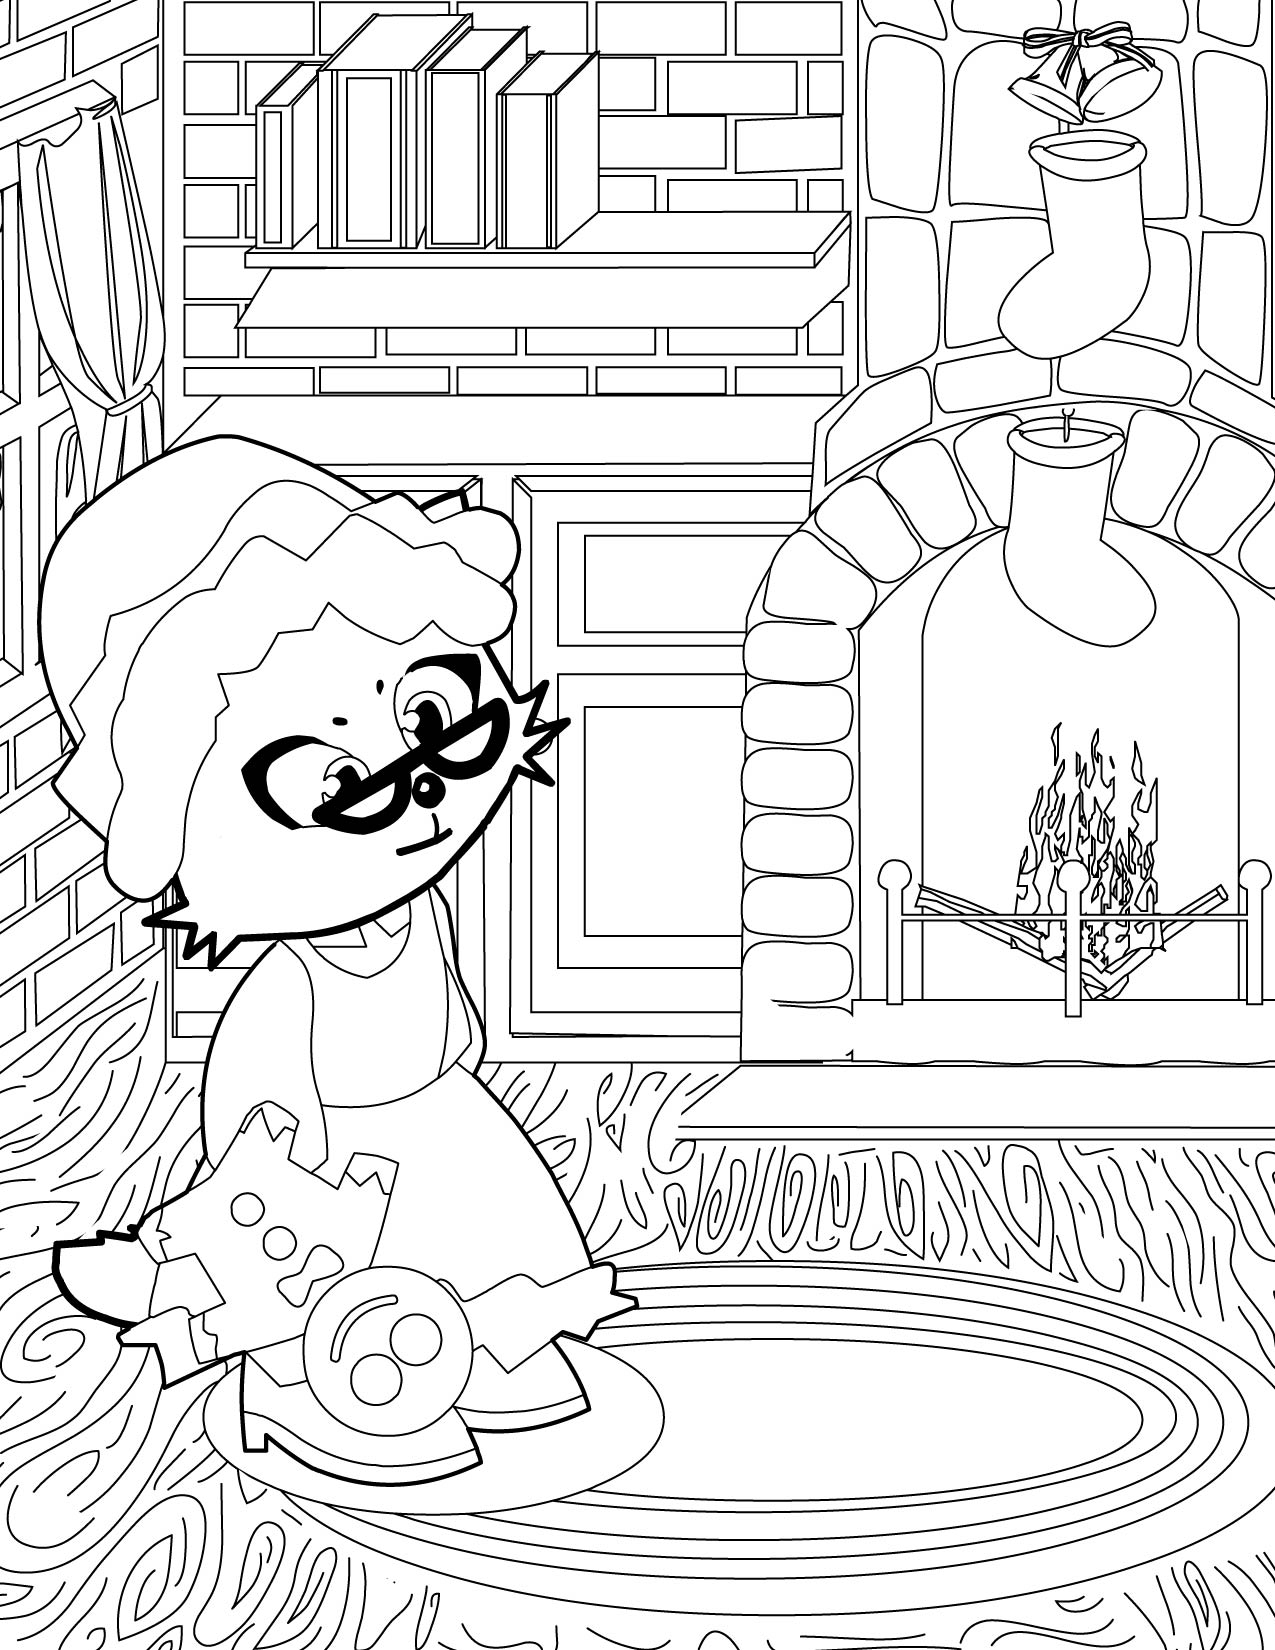 mrs claus coloring page handipoints